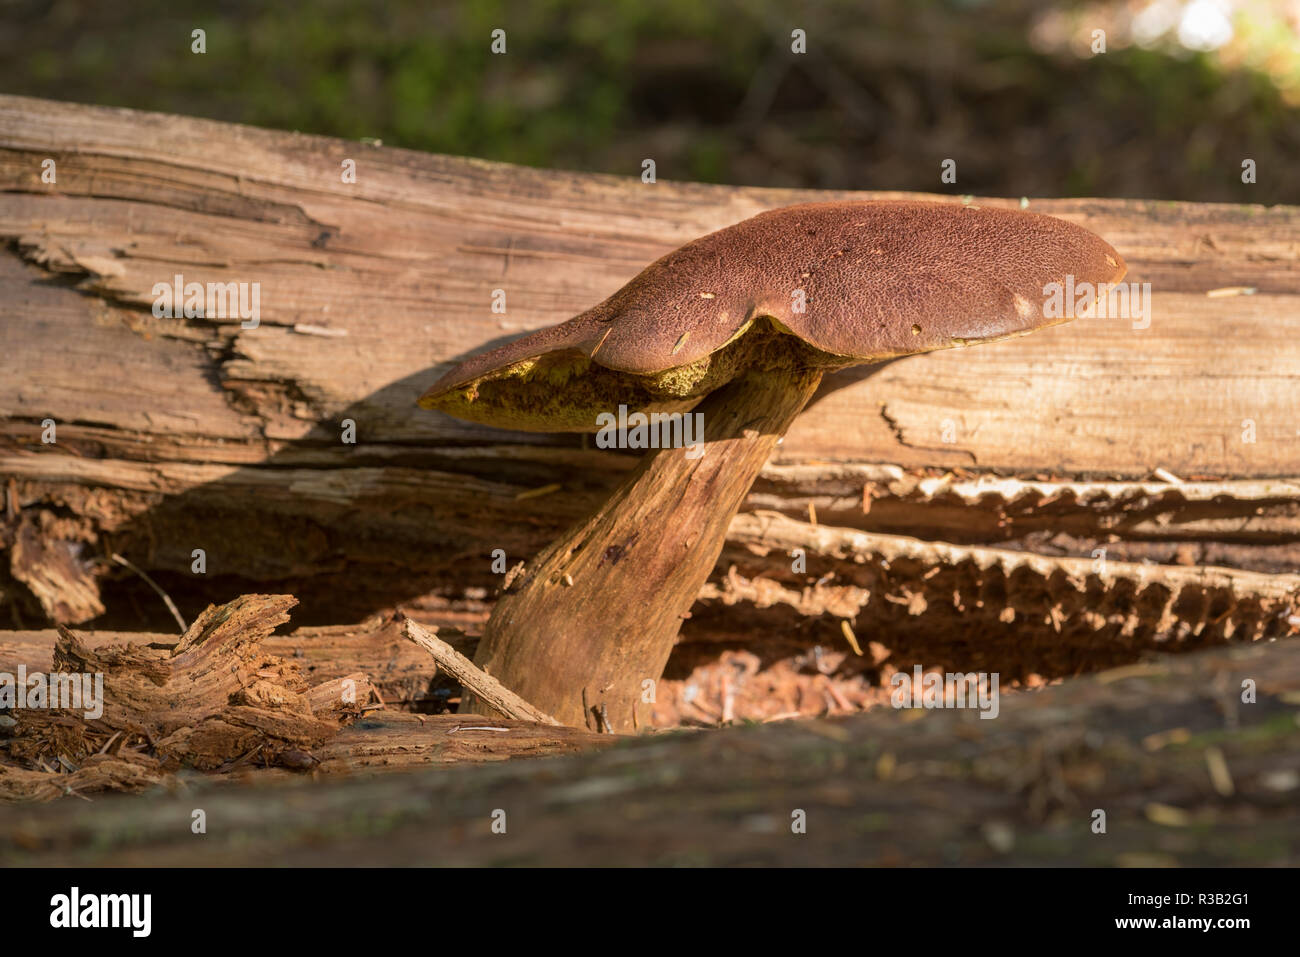 Mushroom, Selkirk Mountains, Idaho. - Stock Image